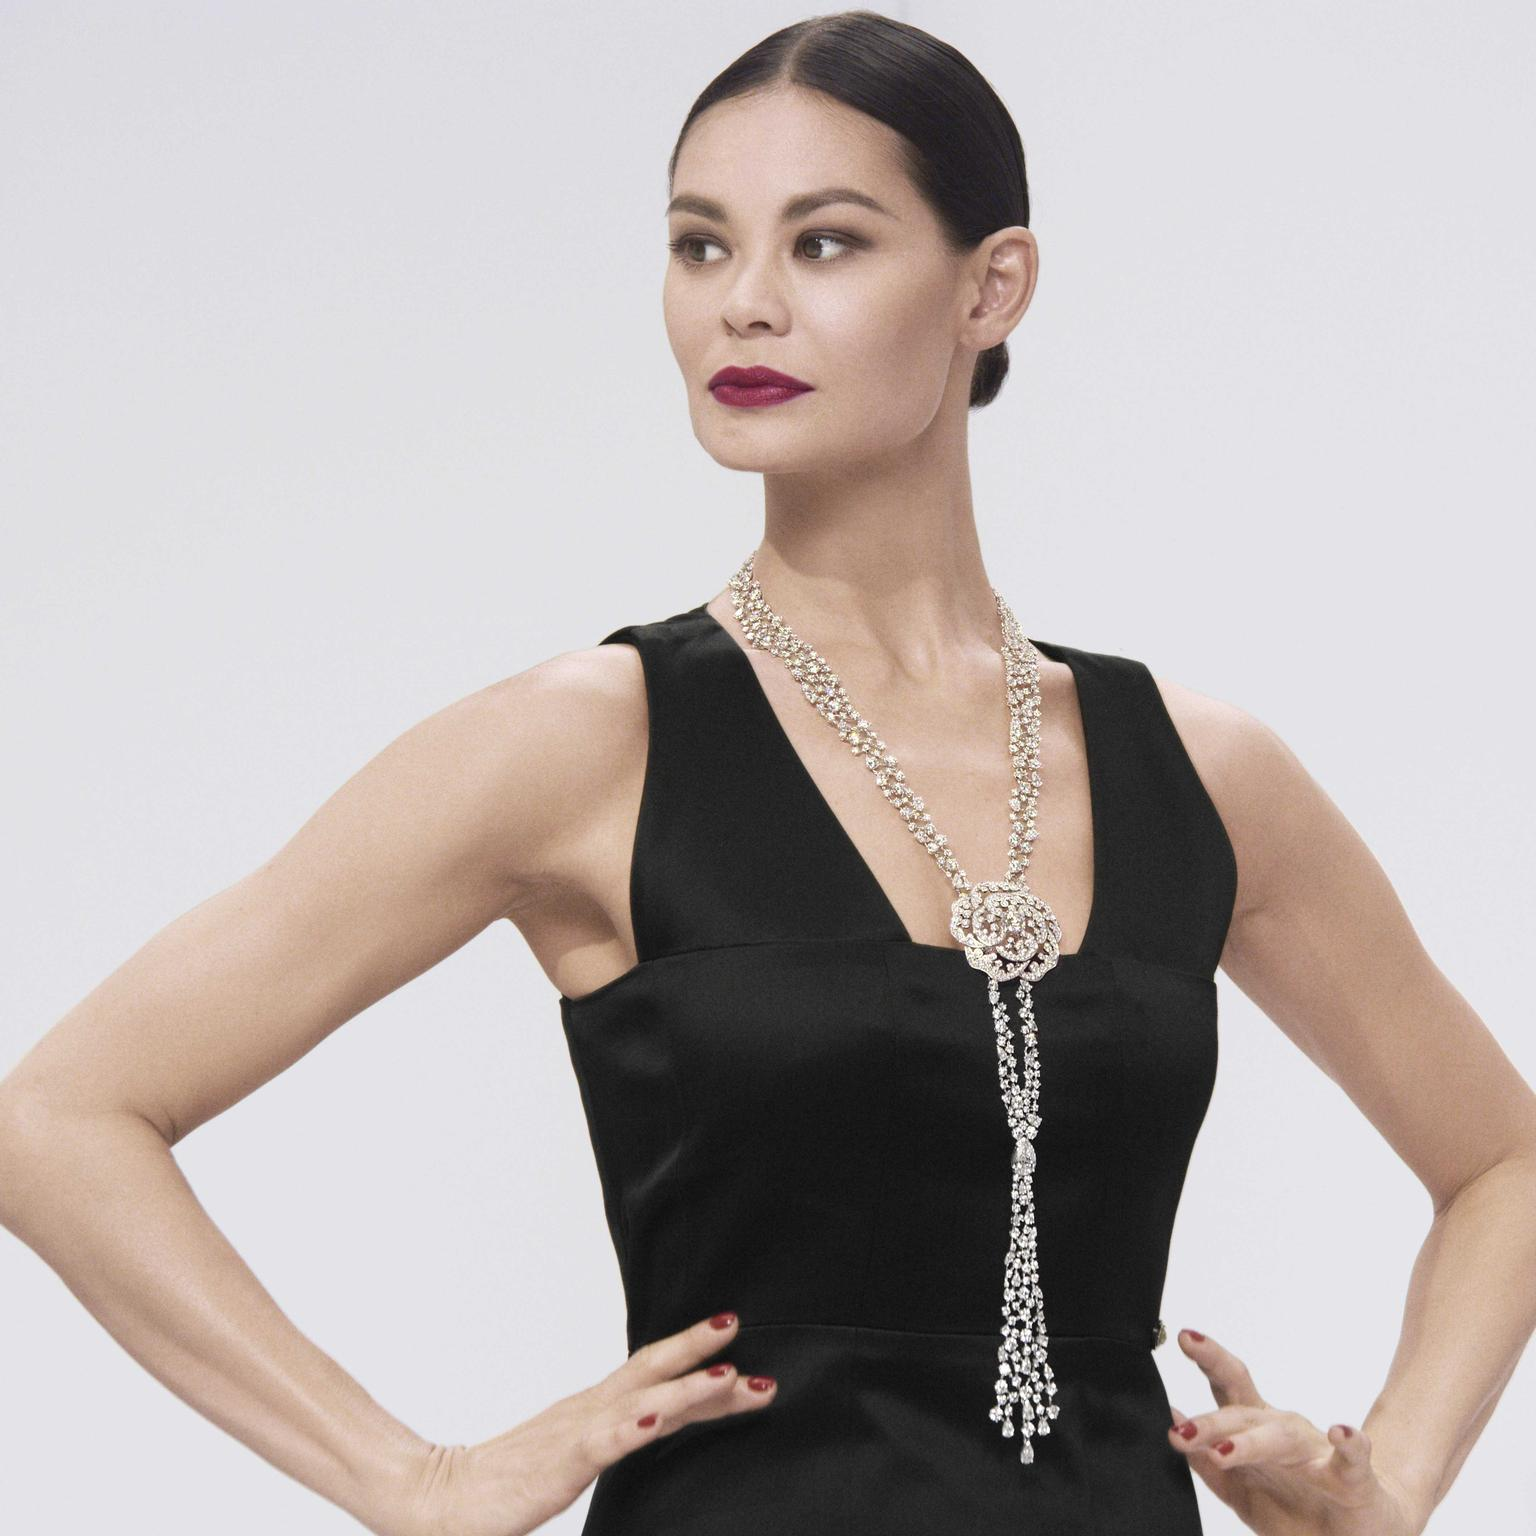 Chanel 1 5Revelation Diamant white gold and diamond necklace on model